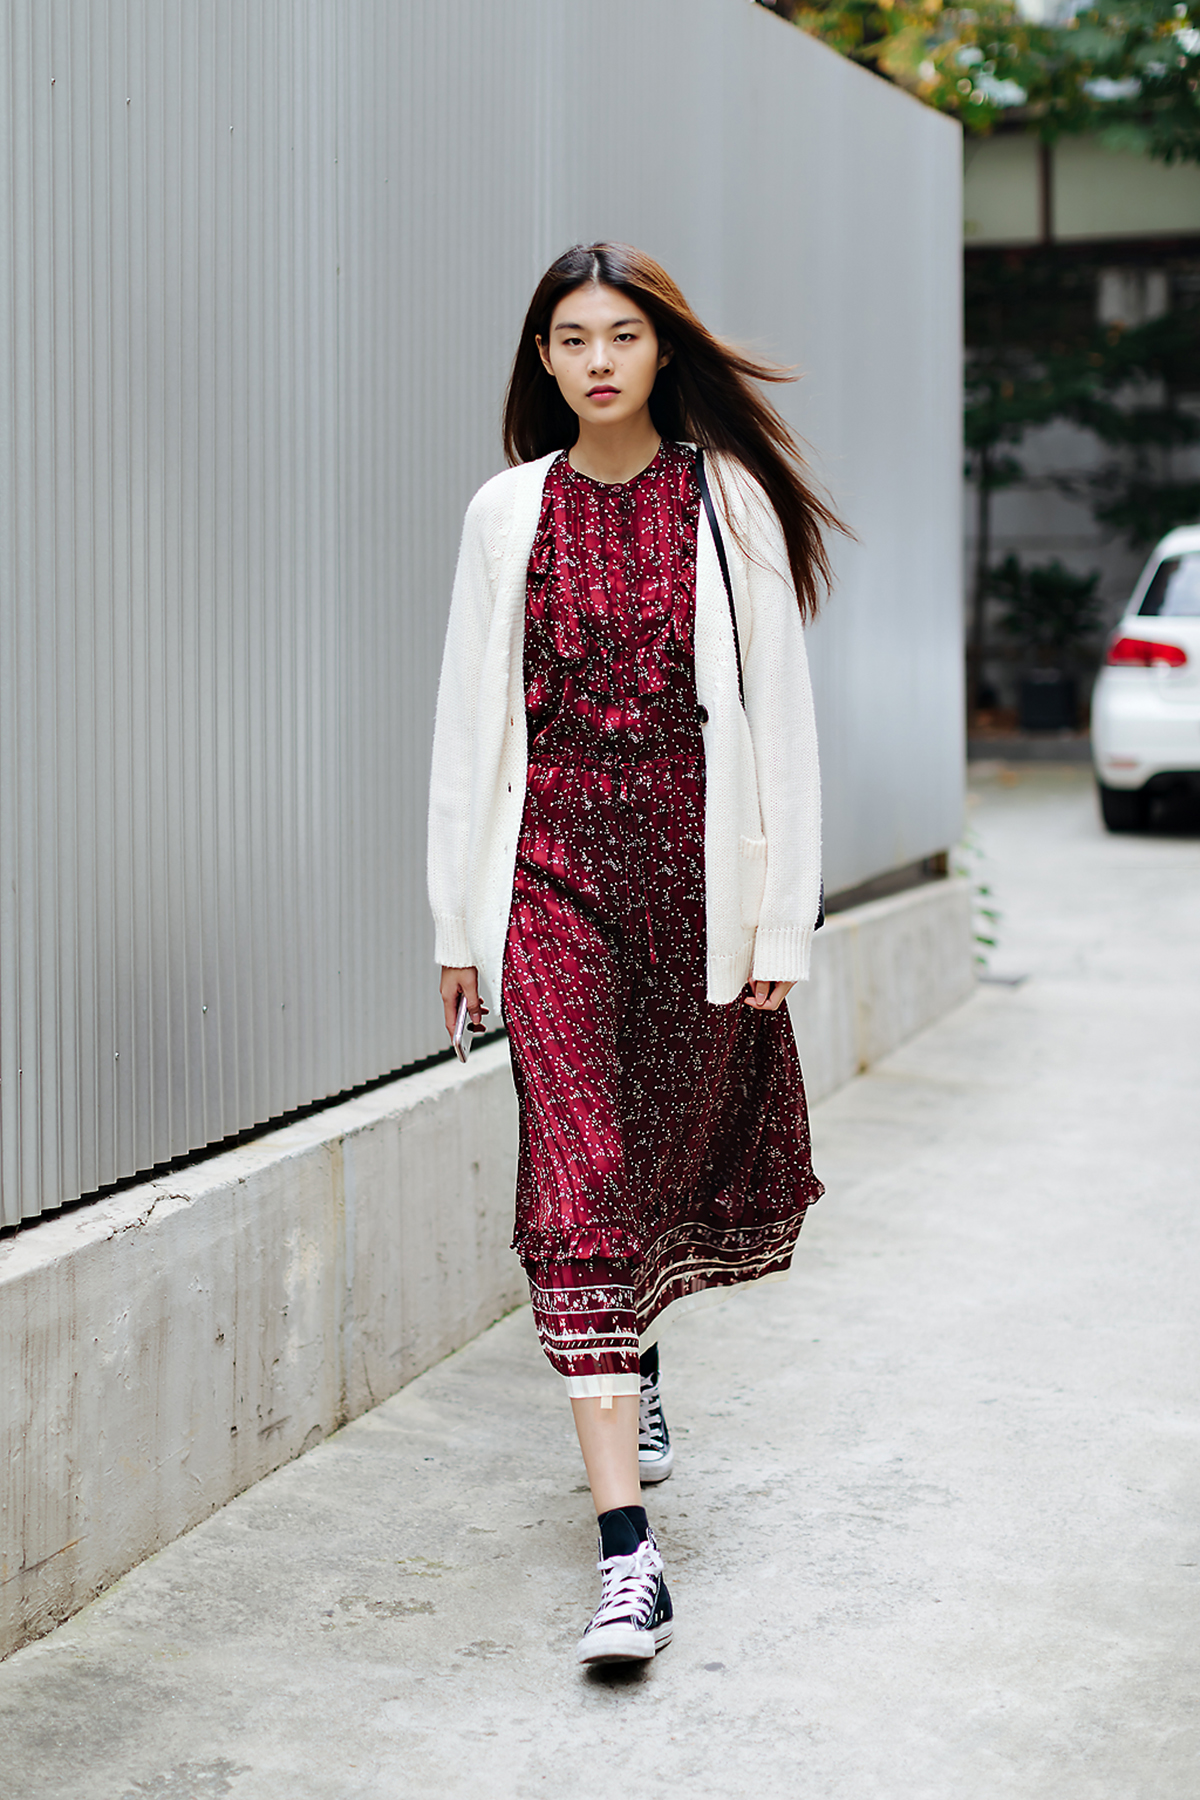 Women fall street style fourth week of october 2018 in seoul 8